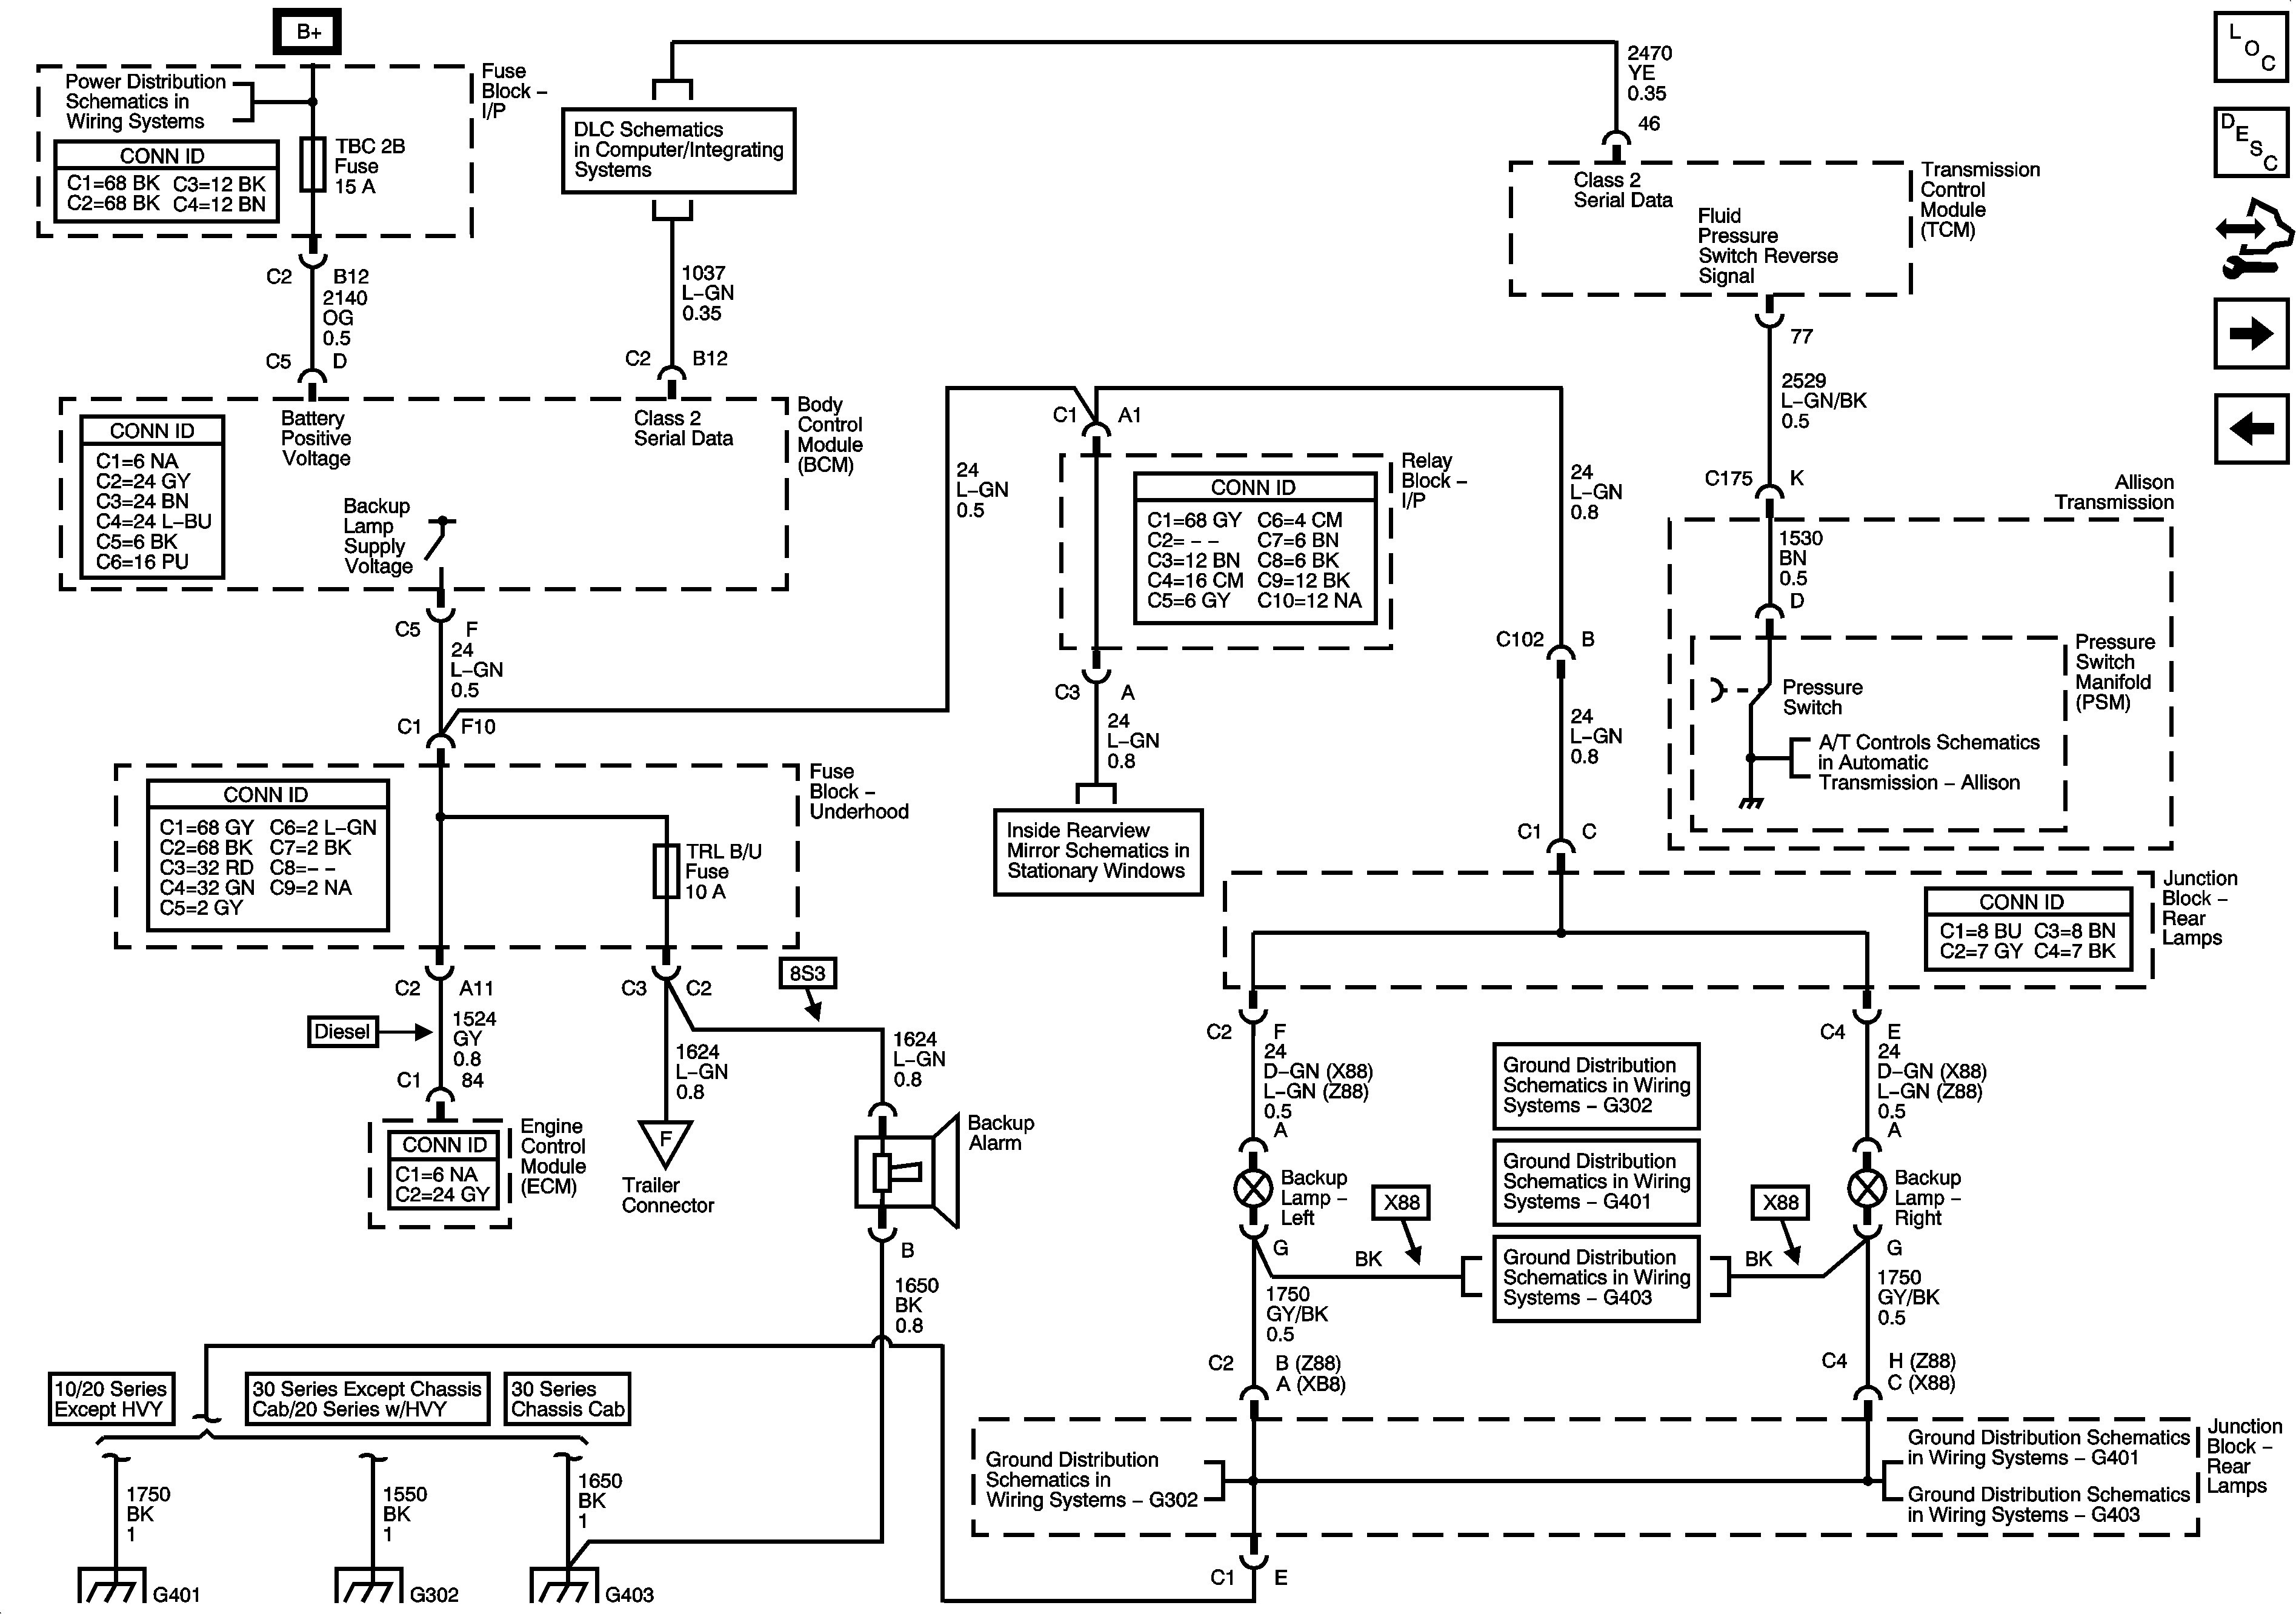 Automotive Diagrams Archives Page 185 Of 301 Wiring | Wiring ... on